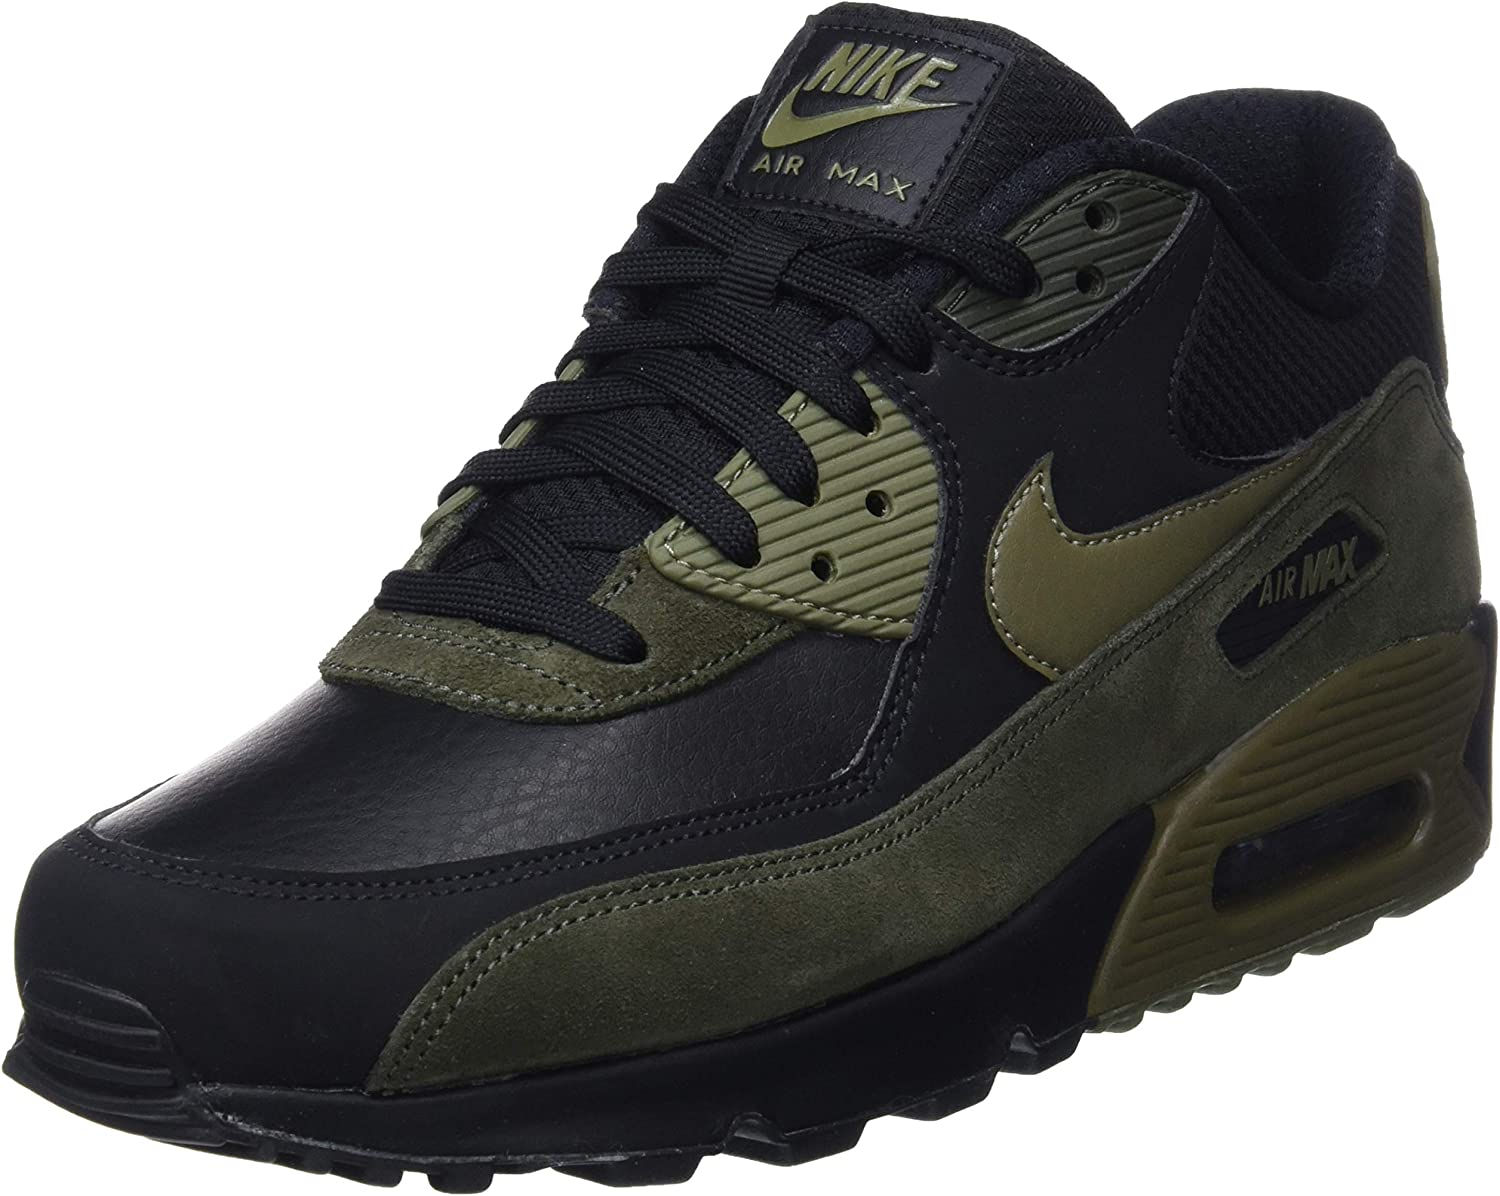 Nike Mens Air Max 90 Leather Running shoes Black Medium Olive Sequoia 302519-014 Size 9